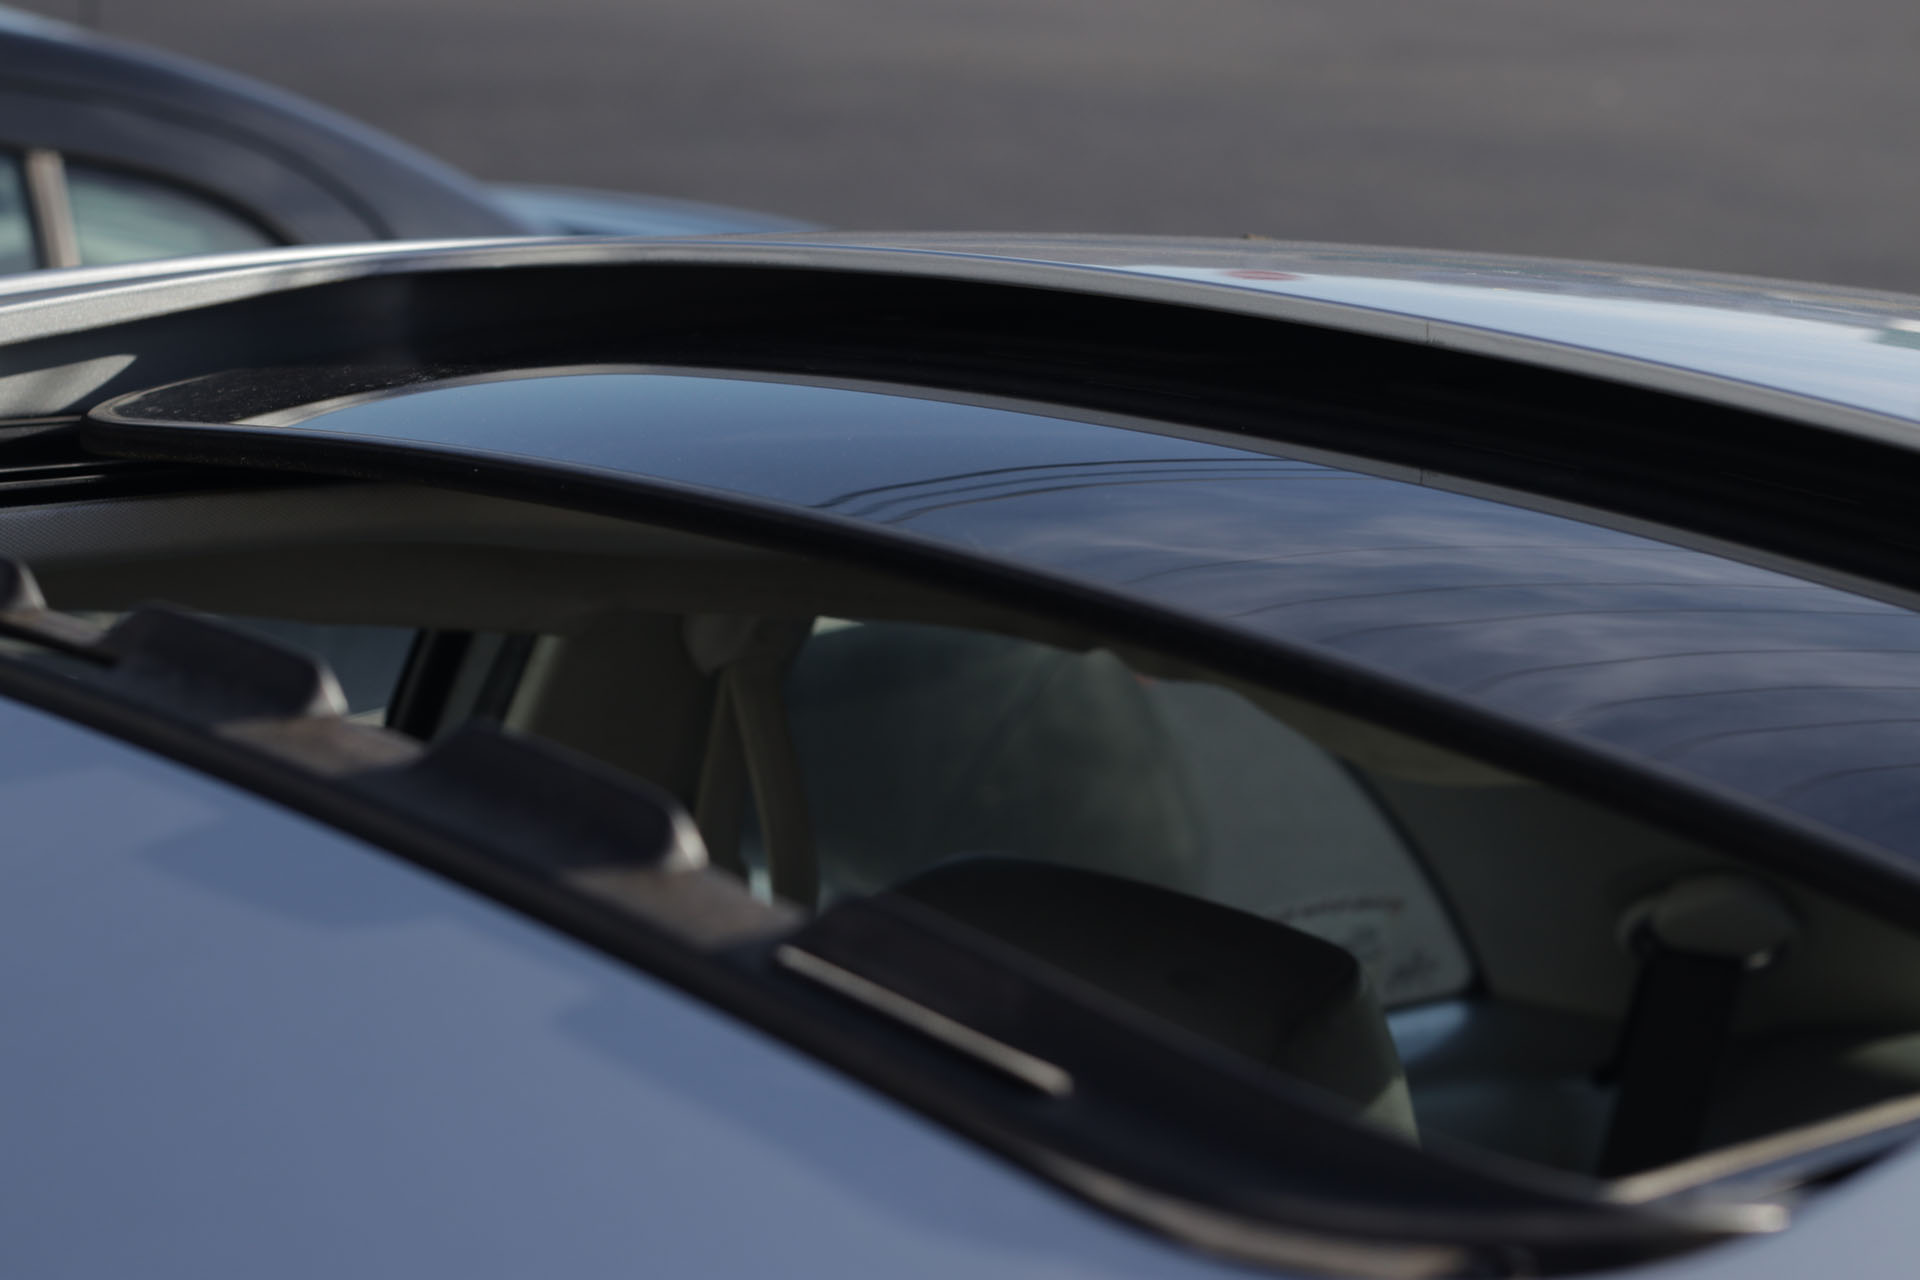 How to tell if your sunroof is clogged